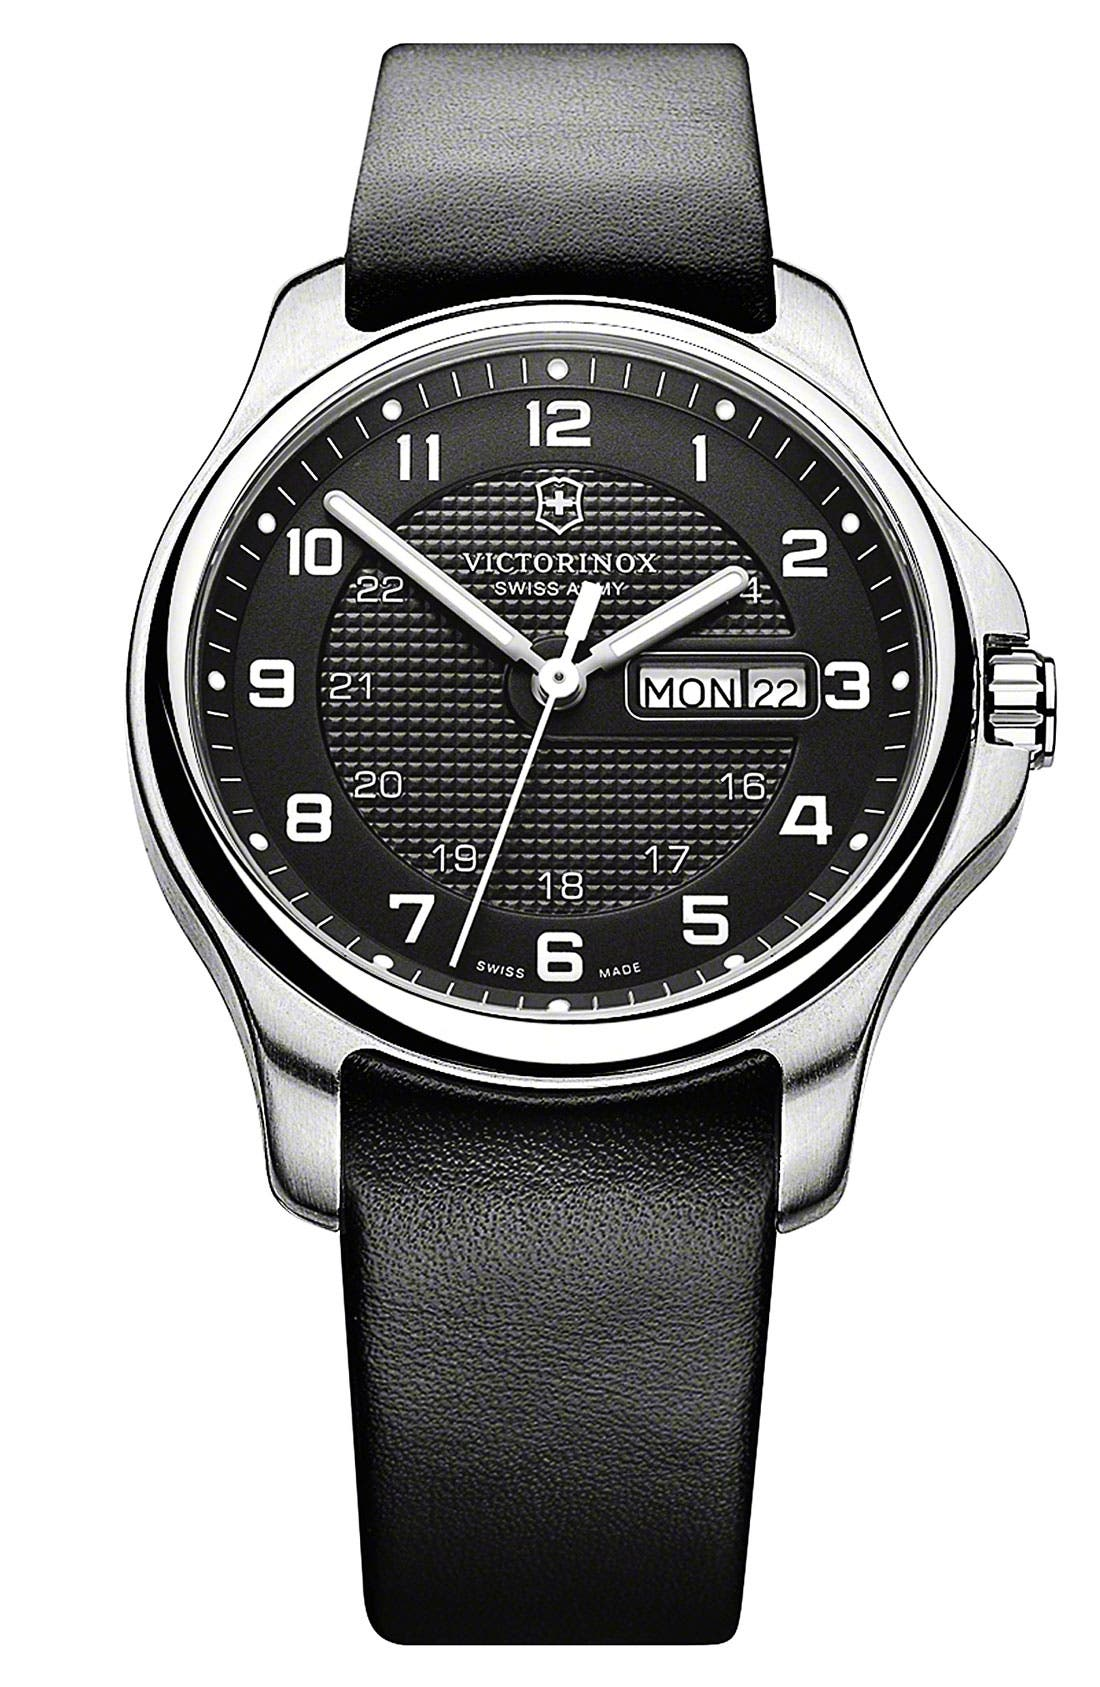 Alternate Image 1 Selected - Victorinox Swiss Army® 'Officer's' Leather Strap Watch with Knife